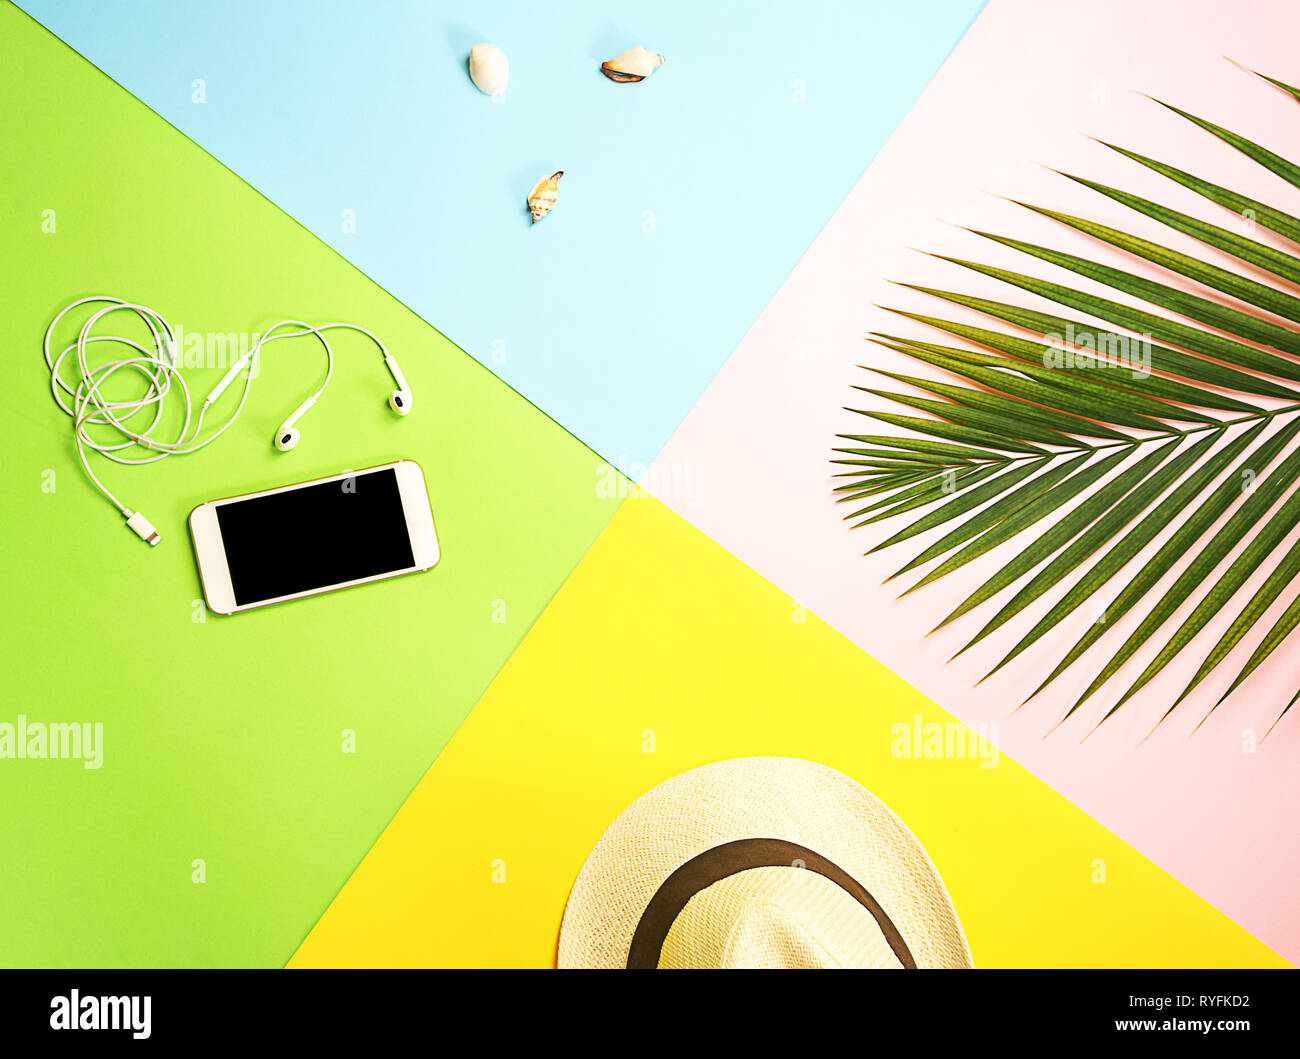 ee61ca6d Top view traveler accessories layout: tropical palm leaf, white straw hat,  mobile phone and headphones, seashells on colorful background.